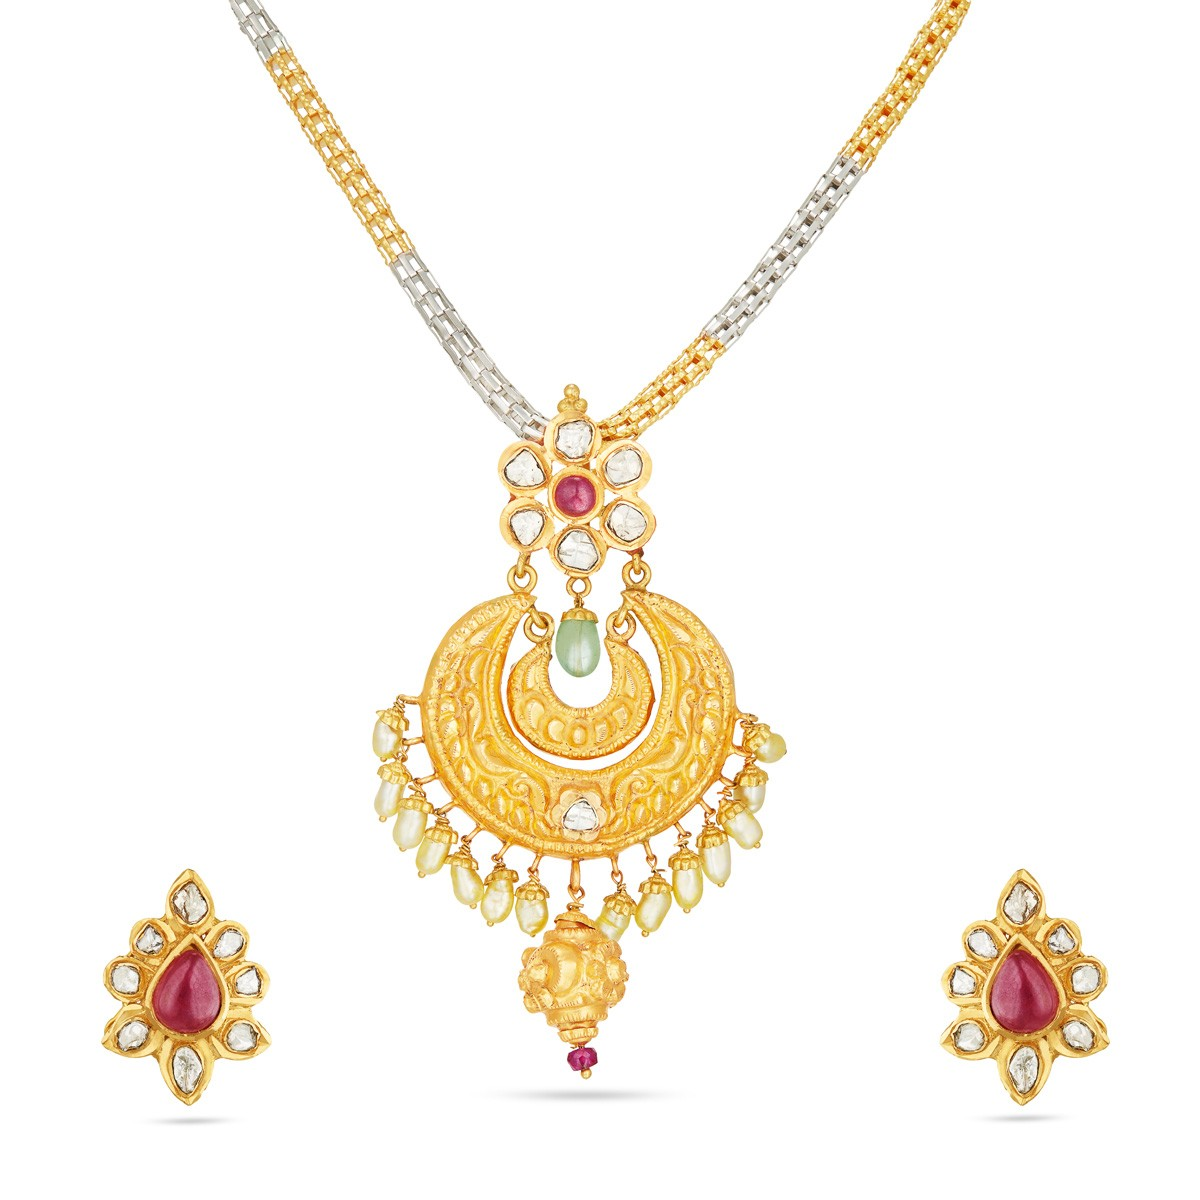 Buy naga design pendant online nagas with diamond design pendant buy naga design pendant online nagas with diamond design pendant online aloadofball Gallery